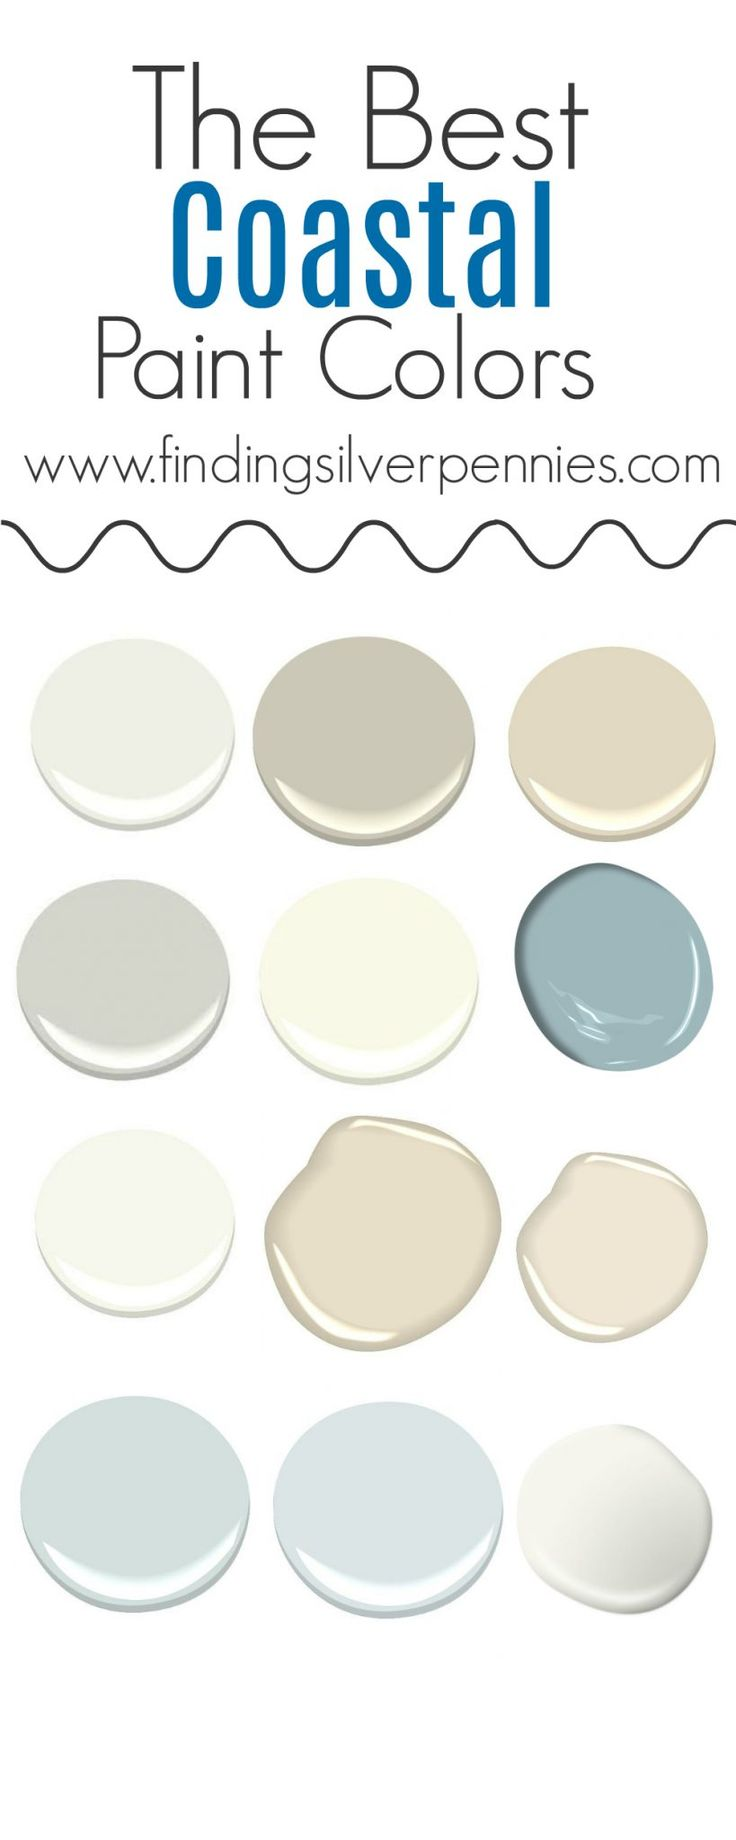 393 best images about colors that work well together on for Paint colors that go together